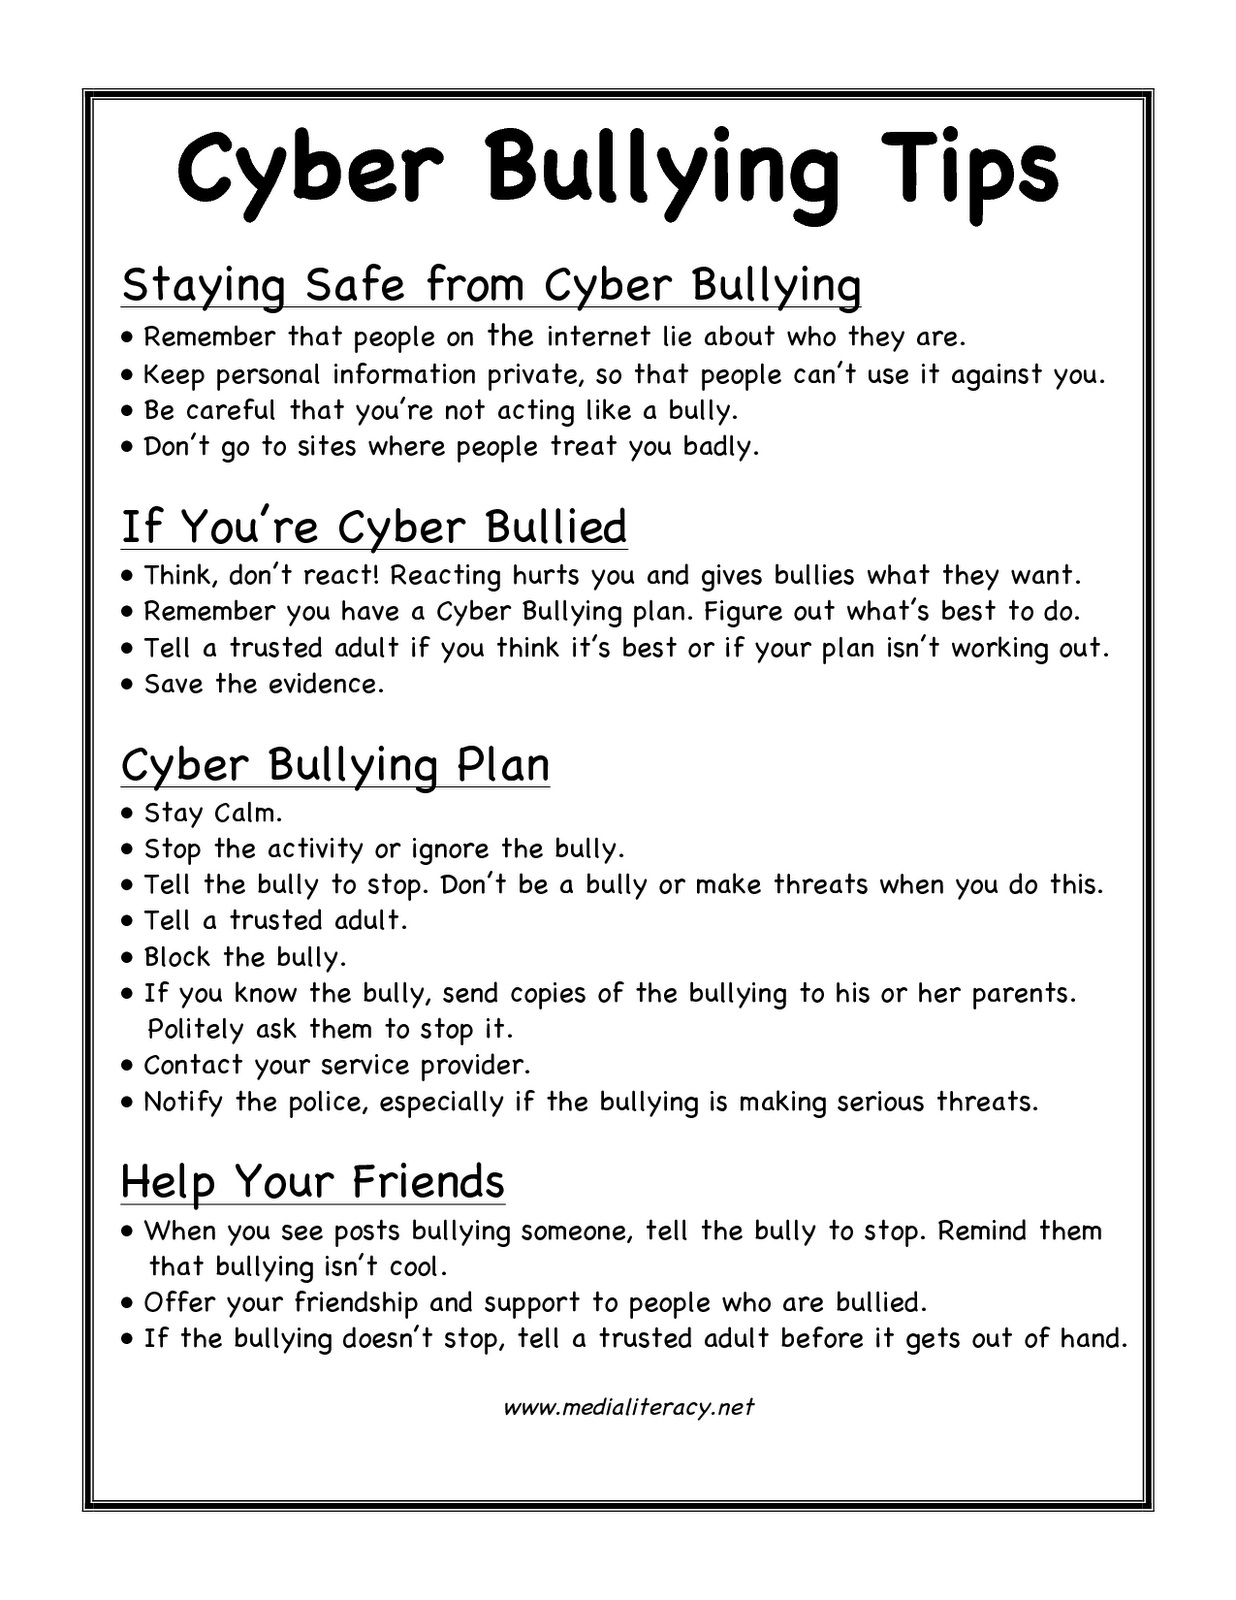 Evidence antibullyingblog from September 5 2011